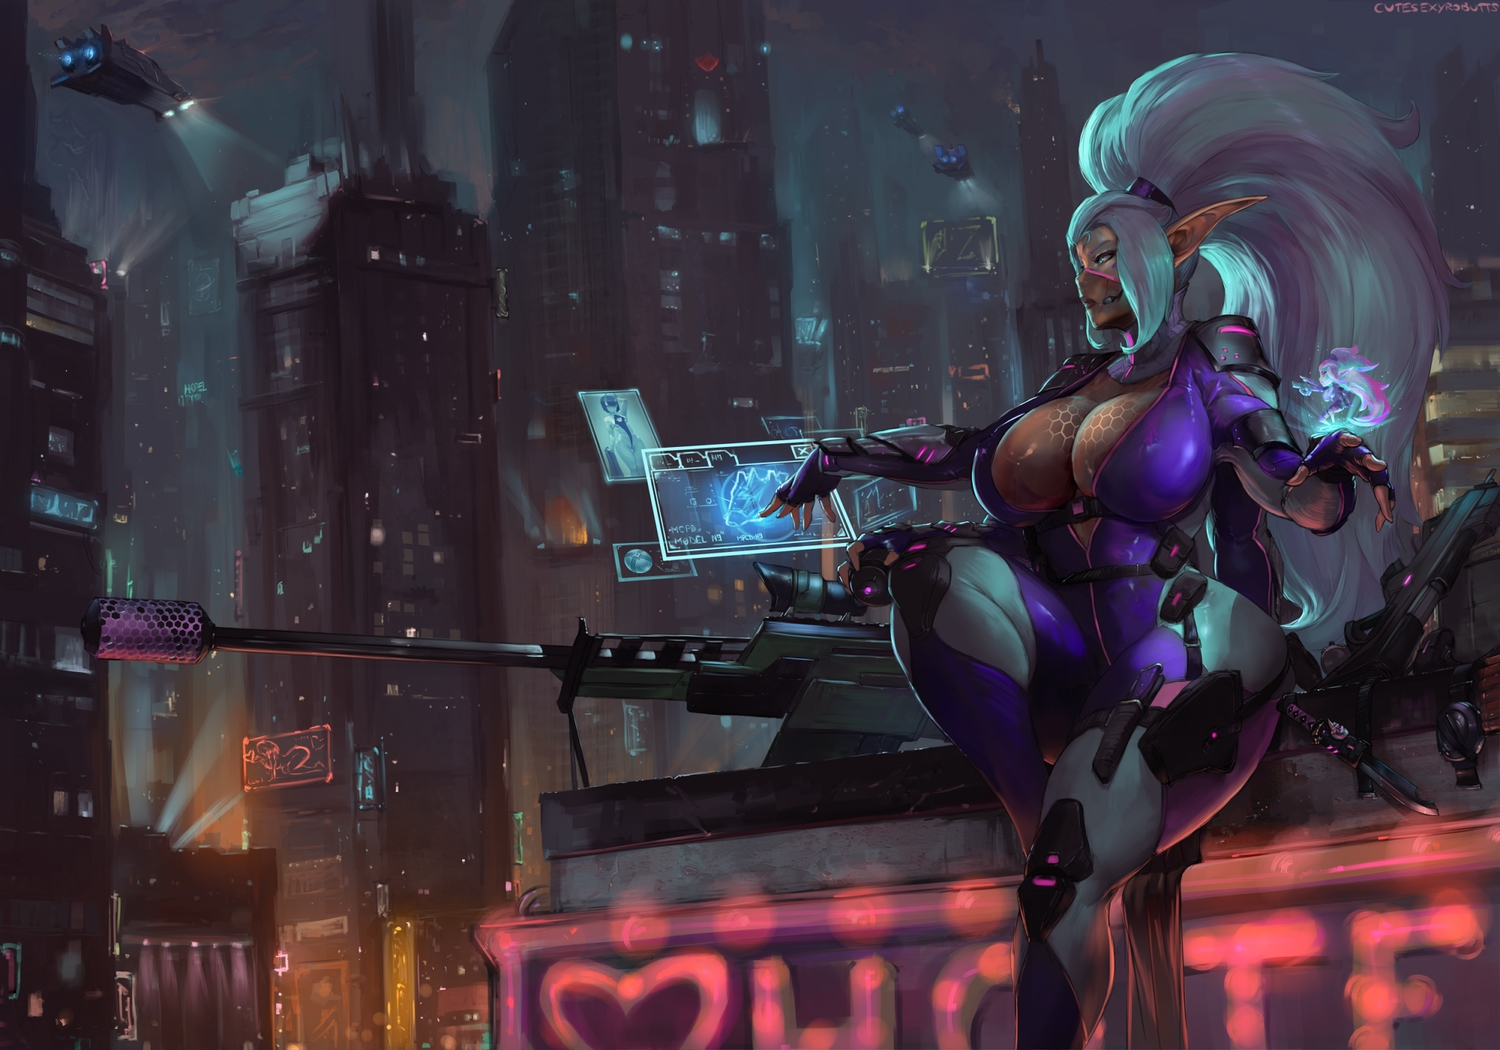 aircraft bodysuit breasts building city cleavage cutesexyrobutts dark_skin gloves gun knife long_hair microphone night original pointed_ears ponytail signed weapon white_hair